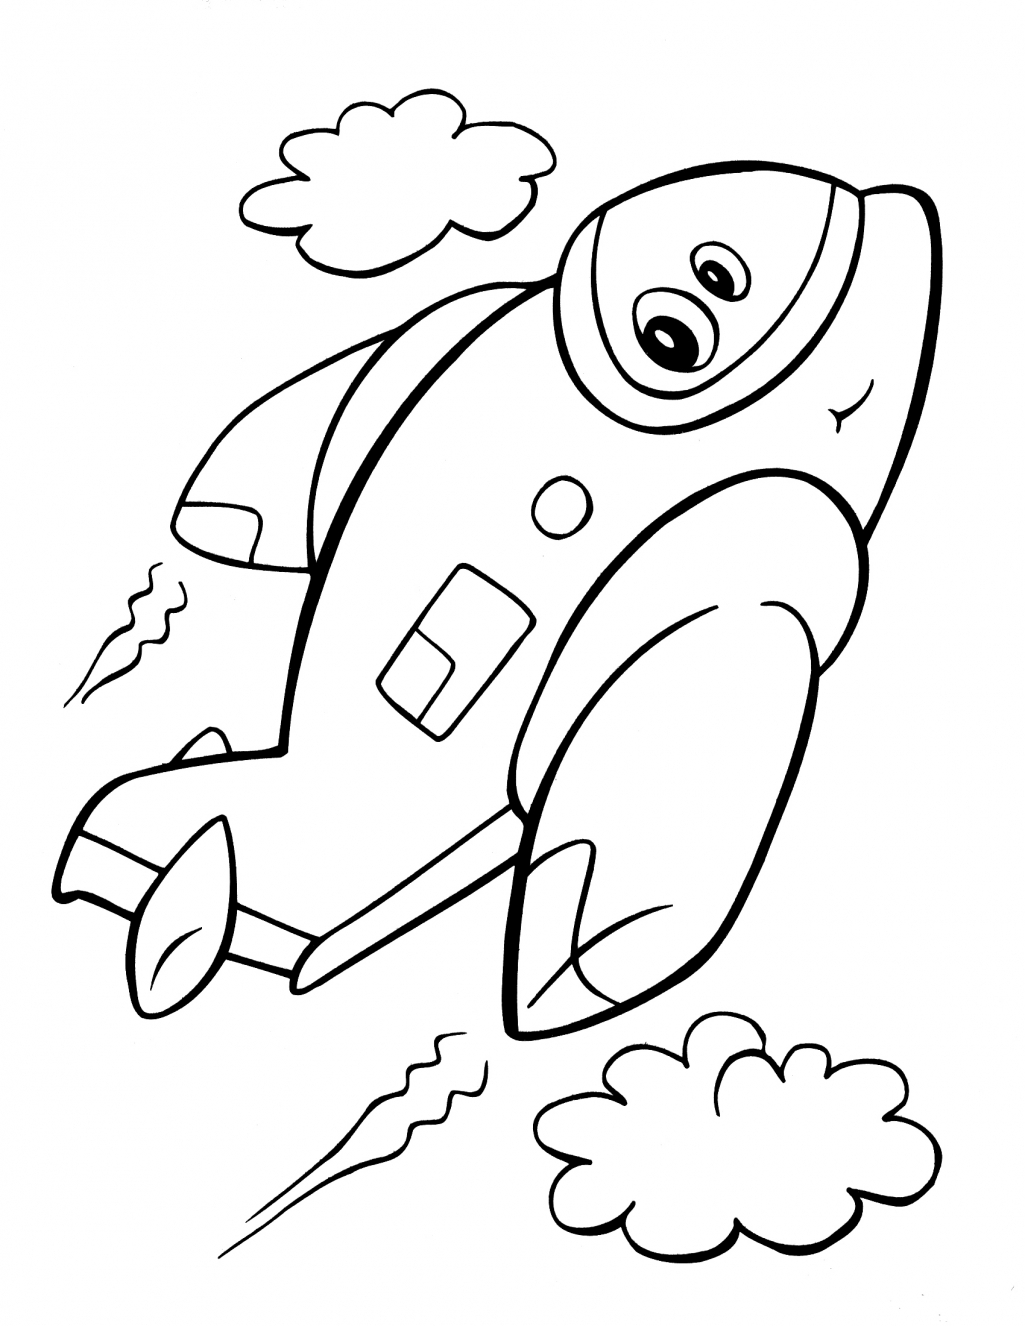 Crayon Coloring Pages Printable At Getcolorings